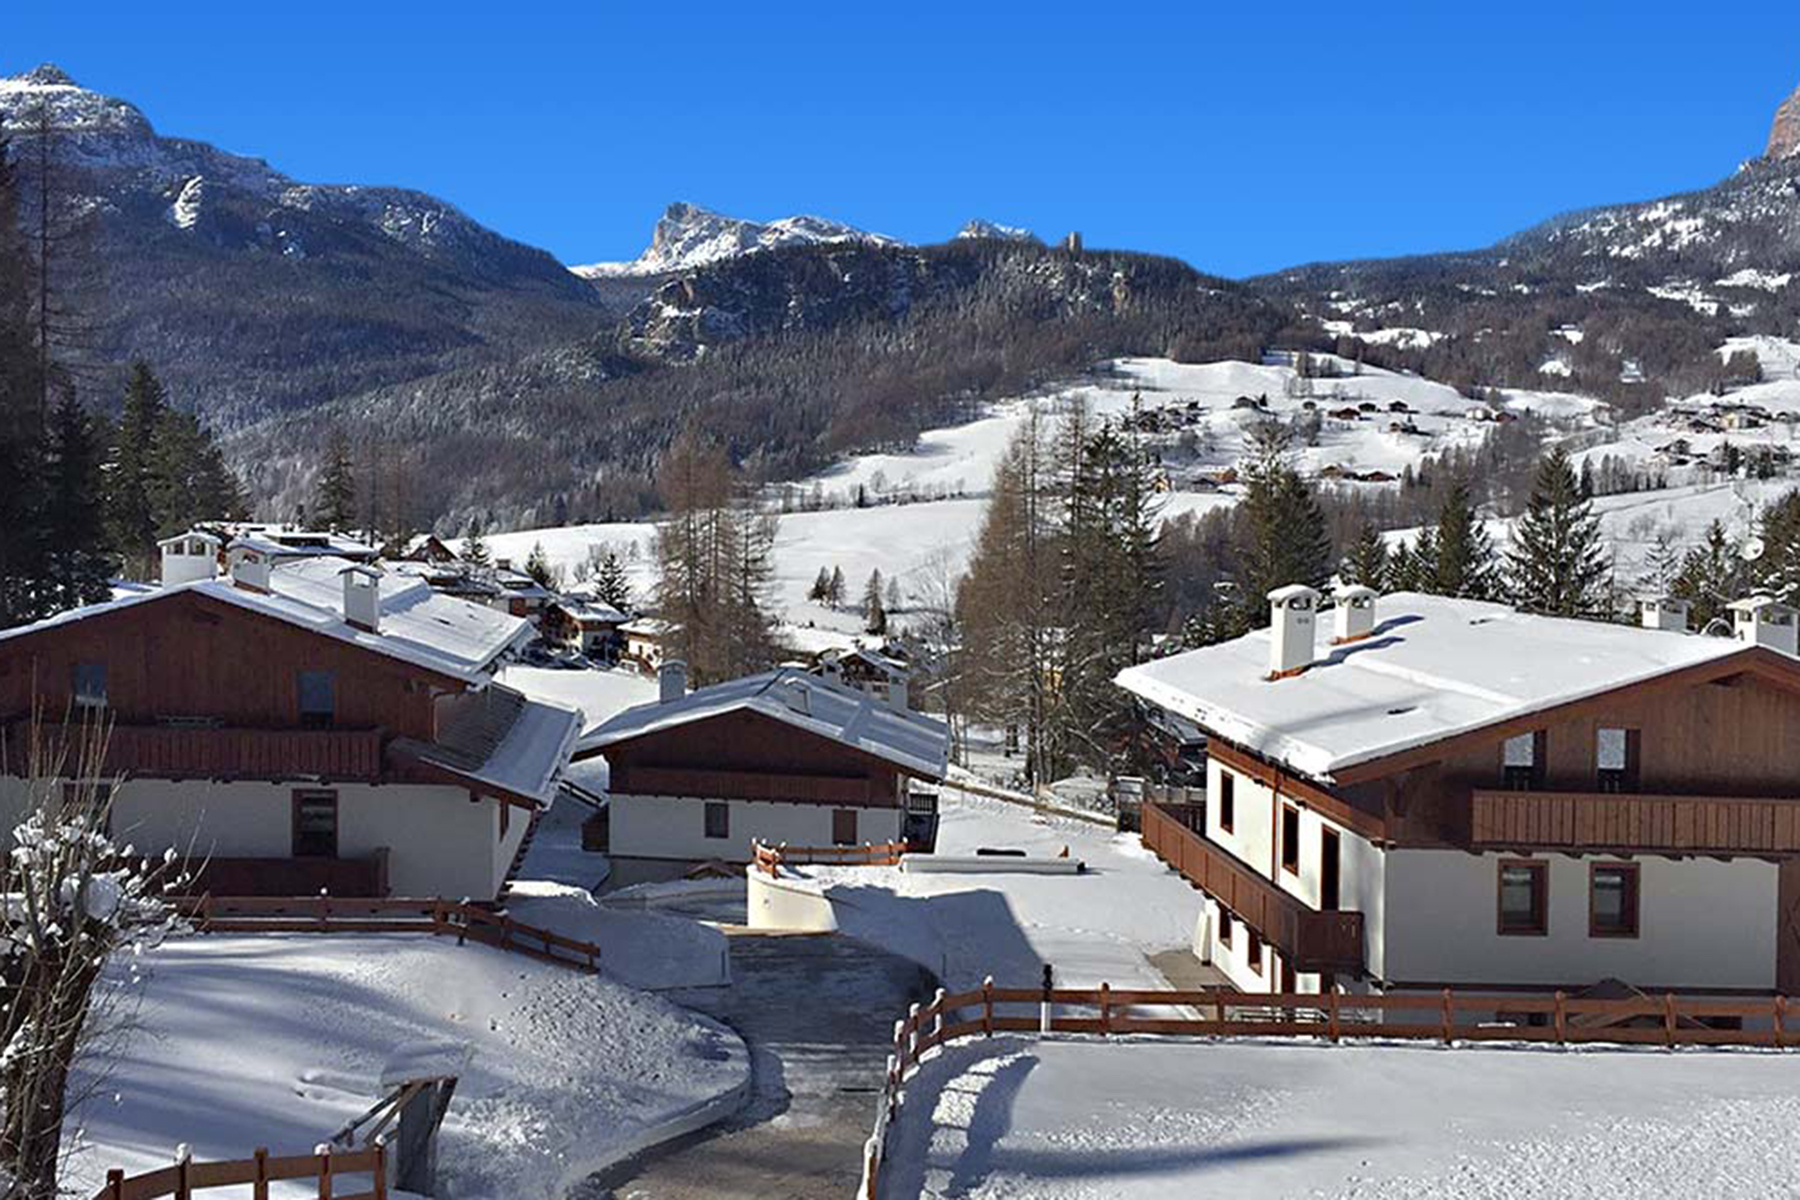 Luxury chalet in exclusive Cortina d\'Ampezzo, gem of the Dolomites